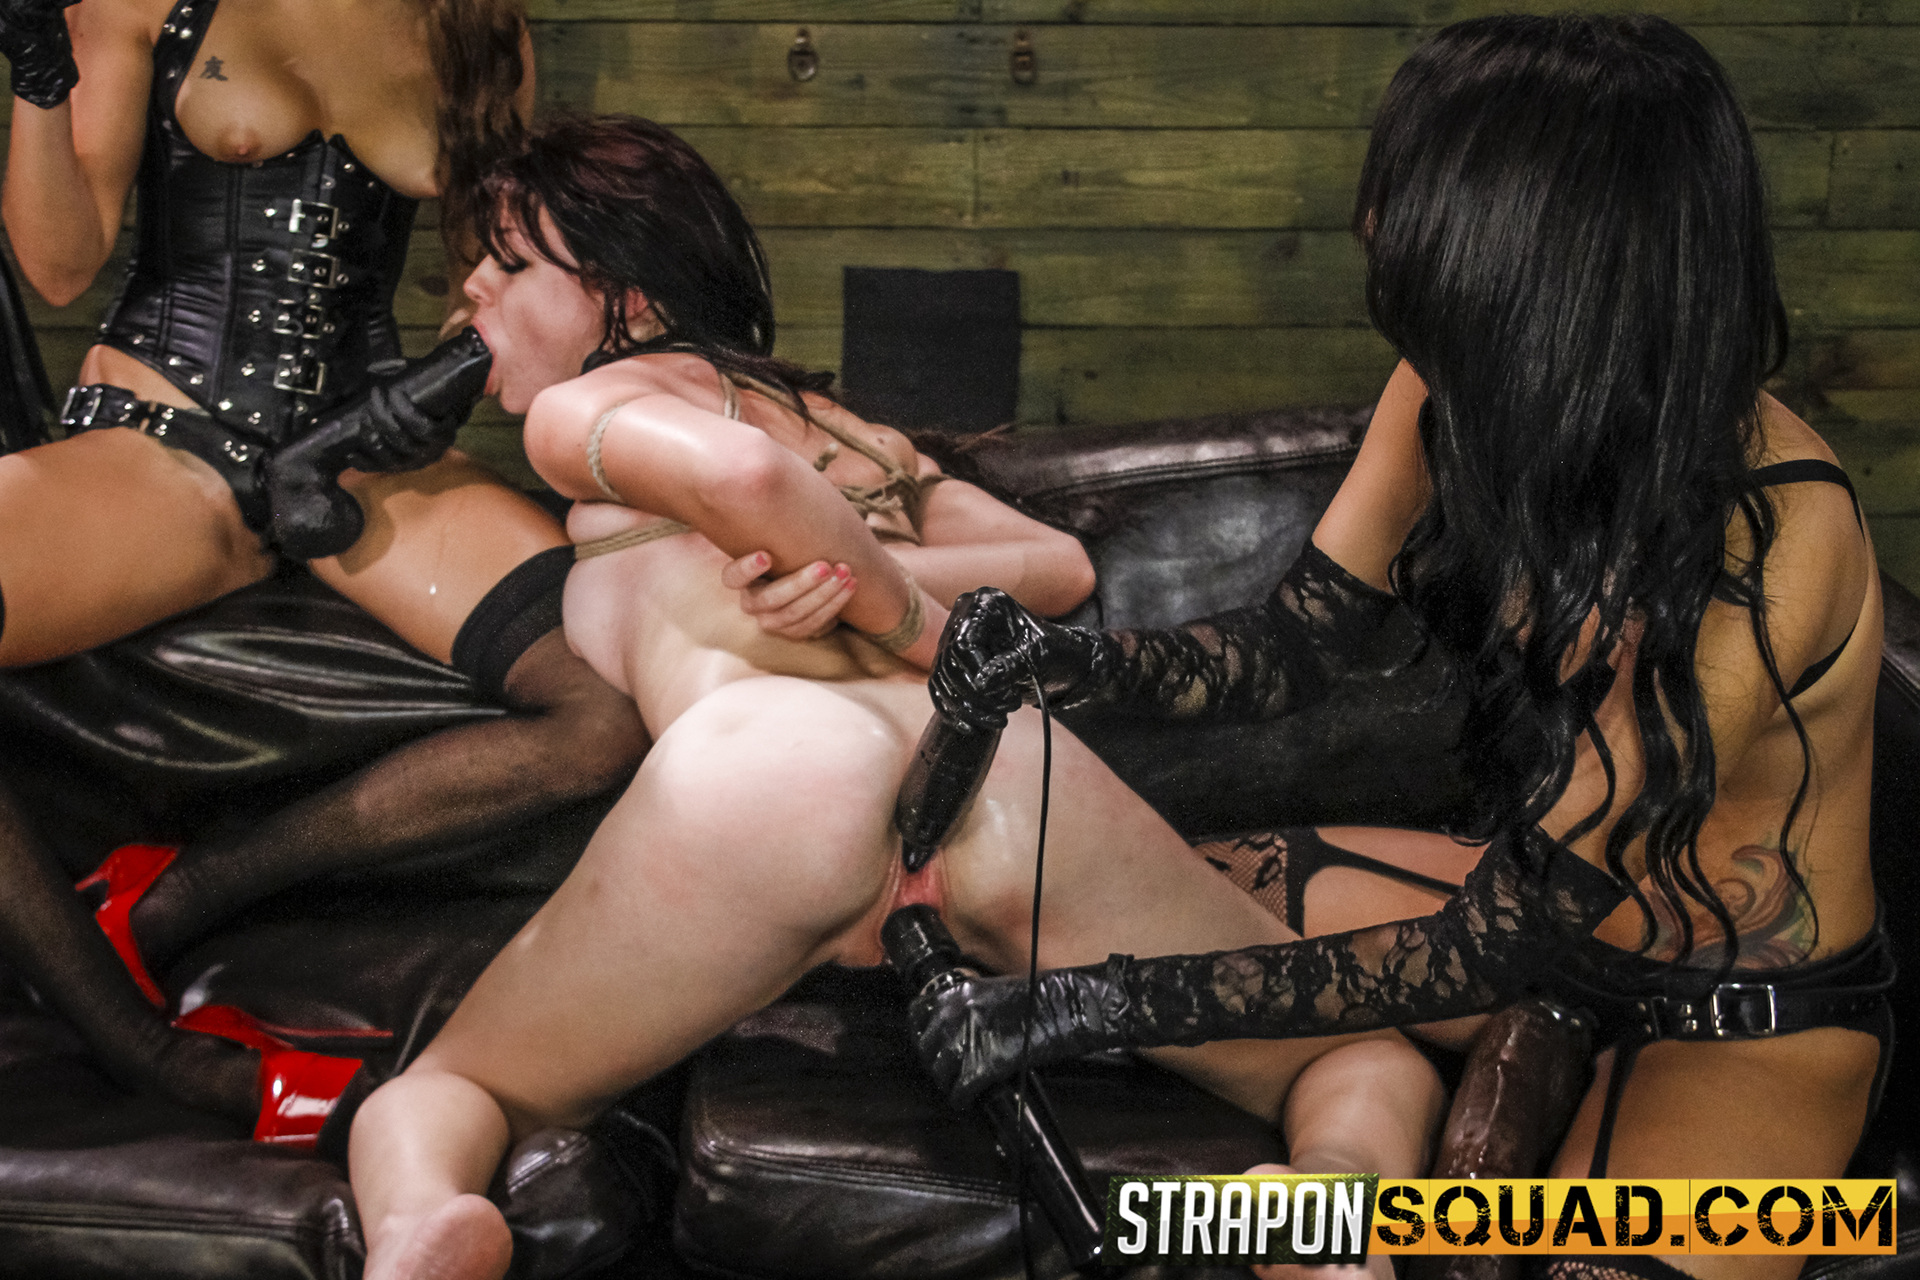 Lezzie Predominance & Sybian Saddle 3 Way With Kaisey Dean, Marina Angel, Esmi Lee